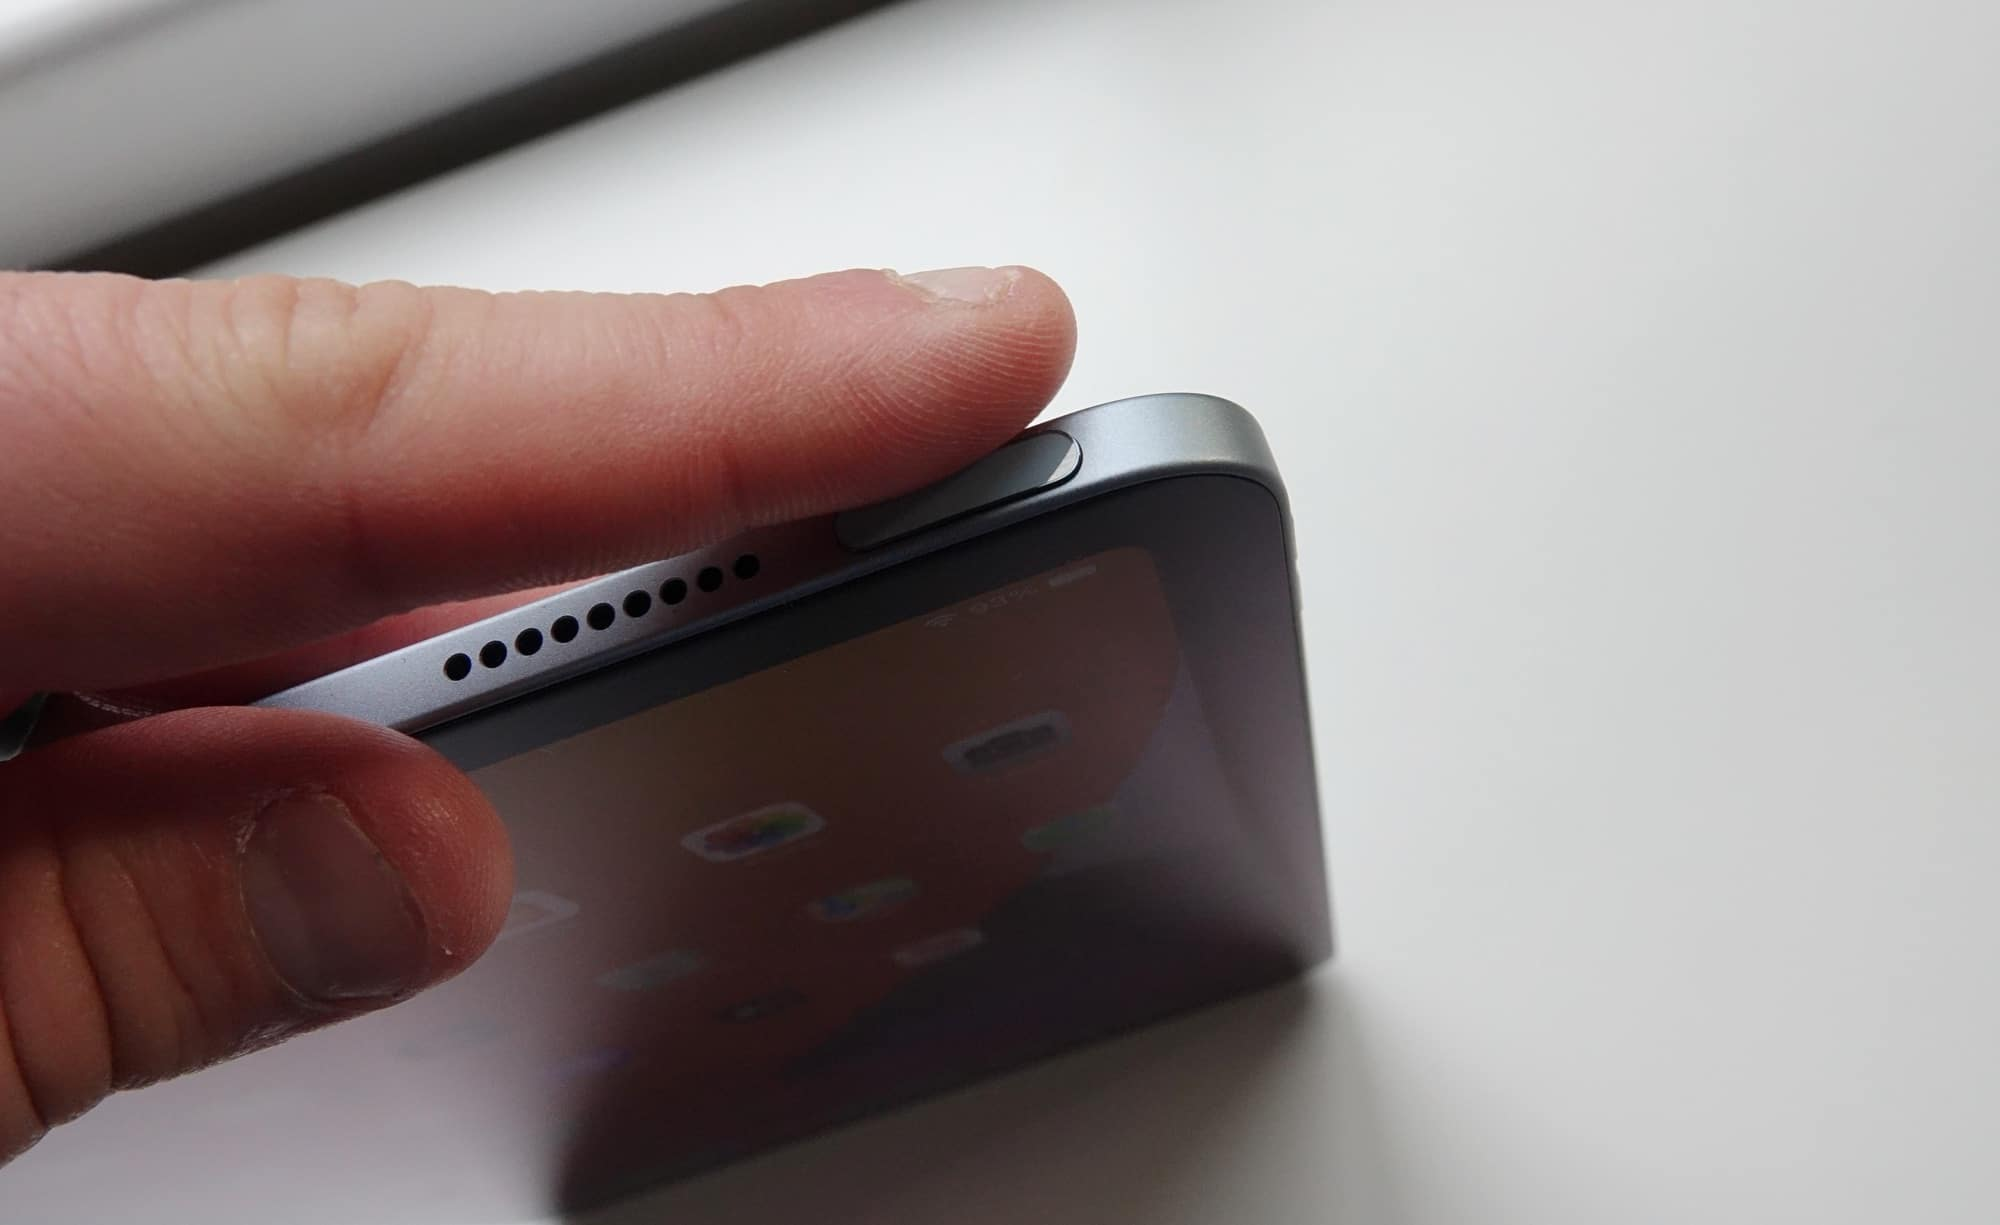 The Touch ID power button of the 2020 iPad Air